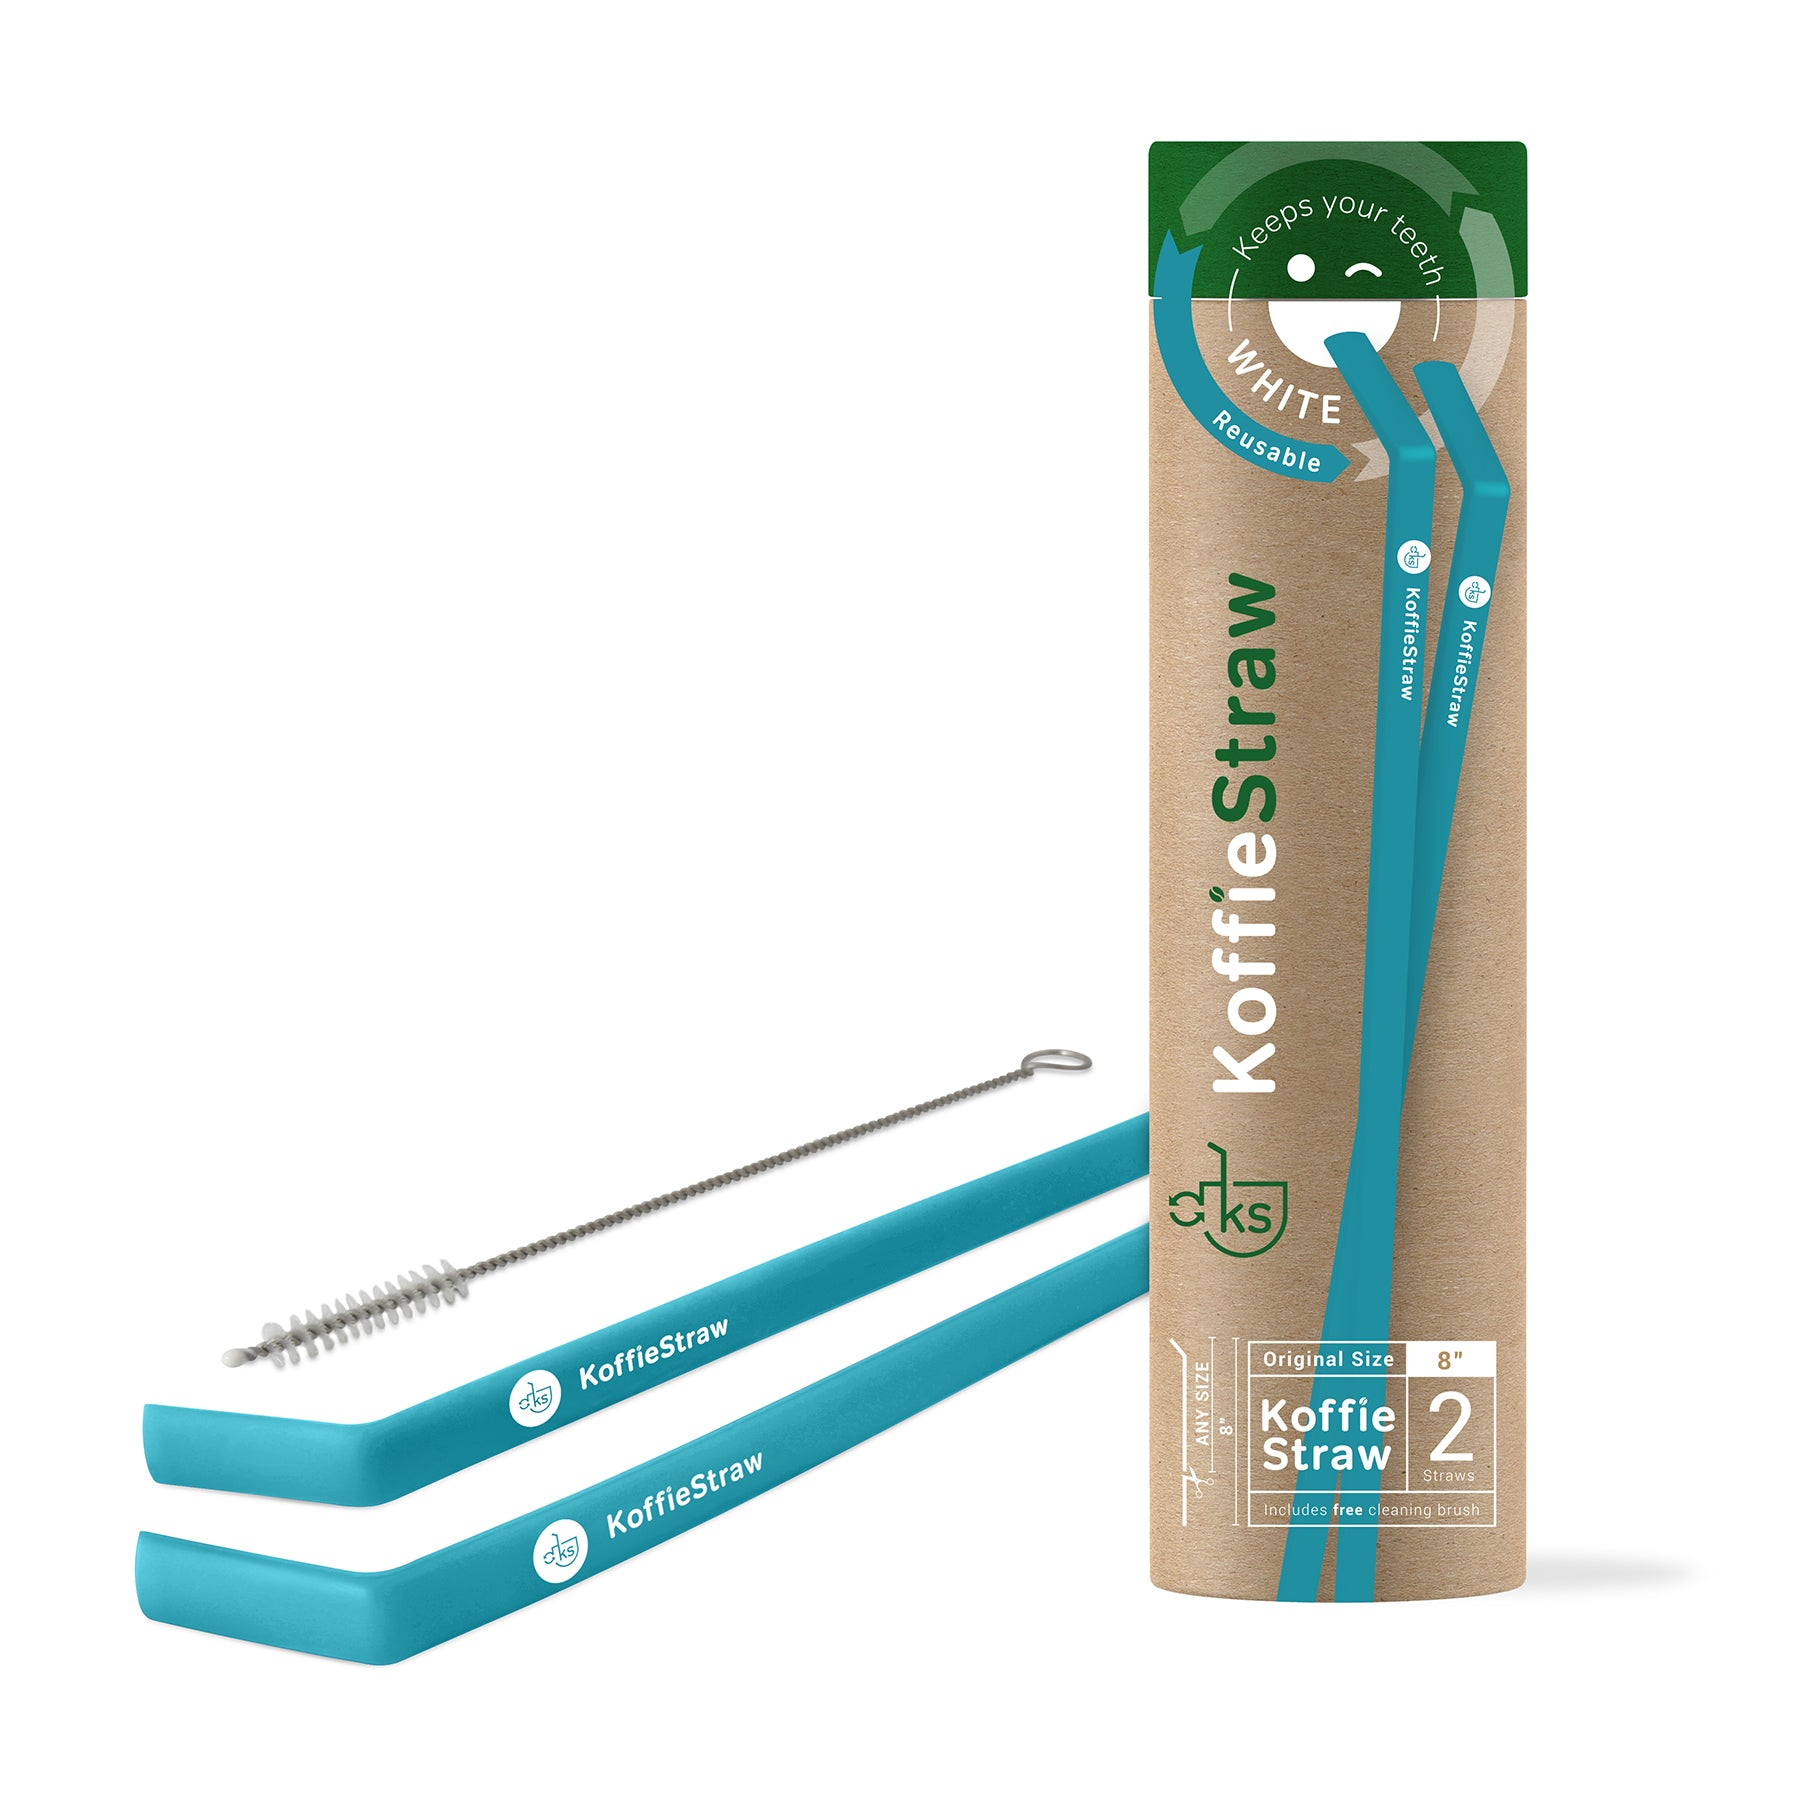 "GIFT TUBE set of: Koffie Straws (Surf blue): 8"" each,  2 straws + 1 cleaning brush"